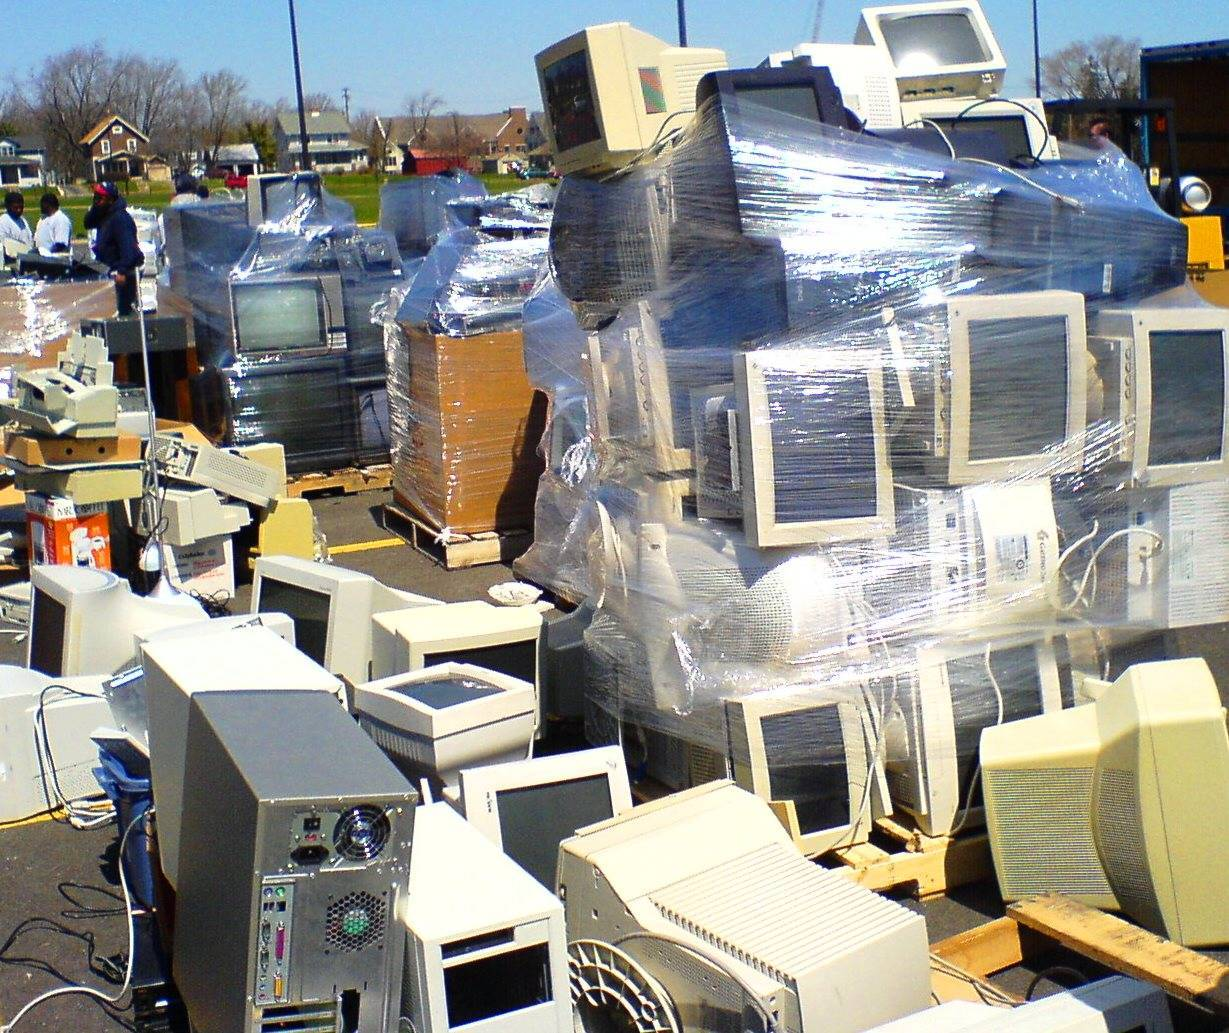 8311660f334a2d831298_electronic_waste_via_flickr_by_George_Hotelling.jpg